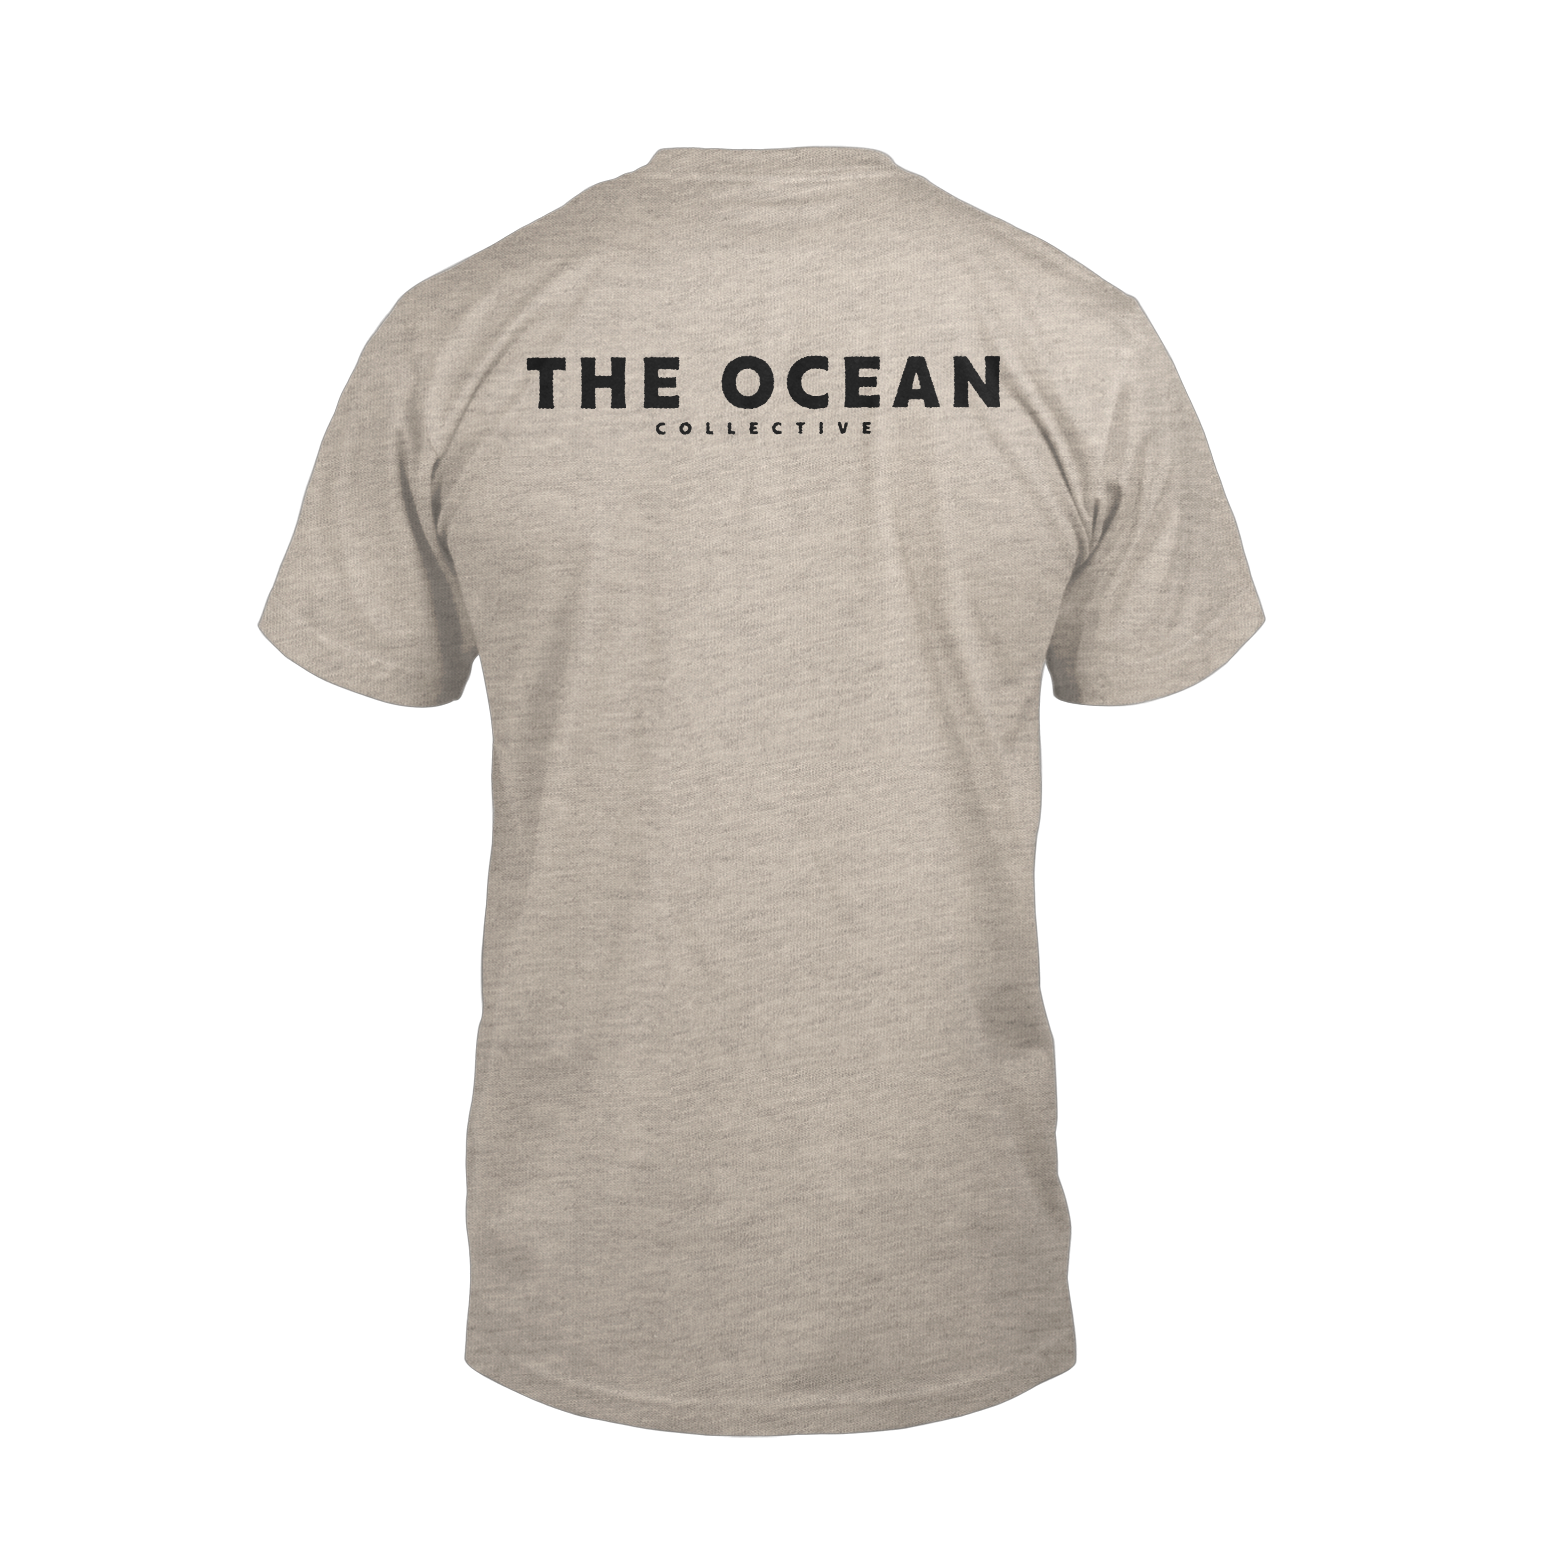 THE OCEAN // PHANEROZOIC II - COLLISION HEATHER SAND T-SHIRT - Wild Thing Records